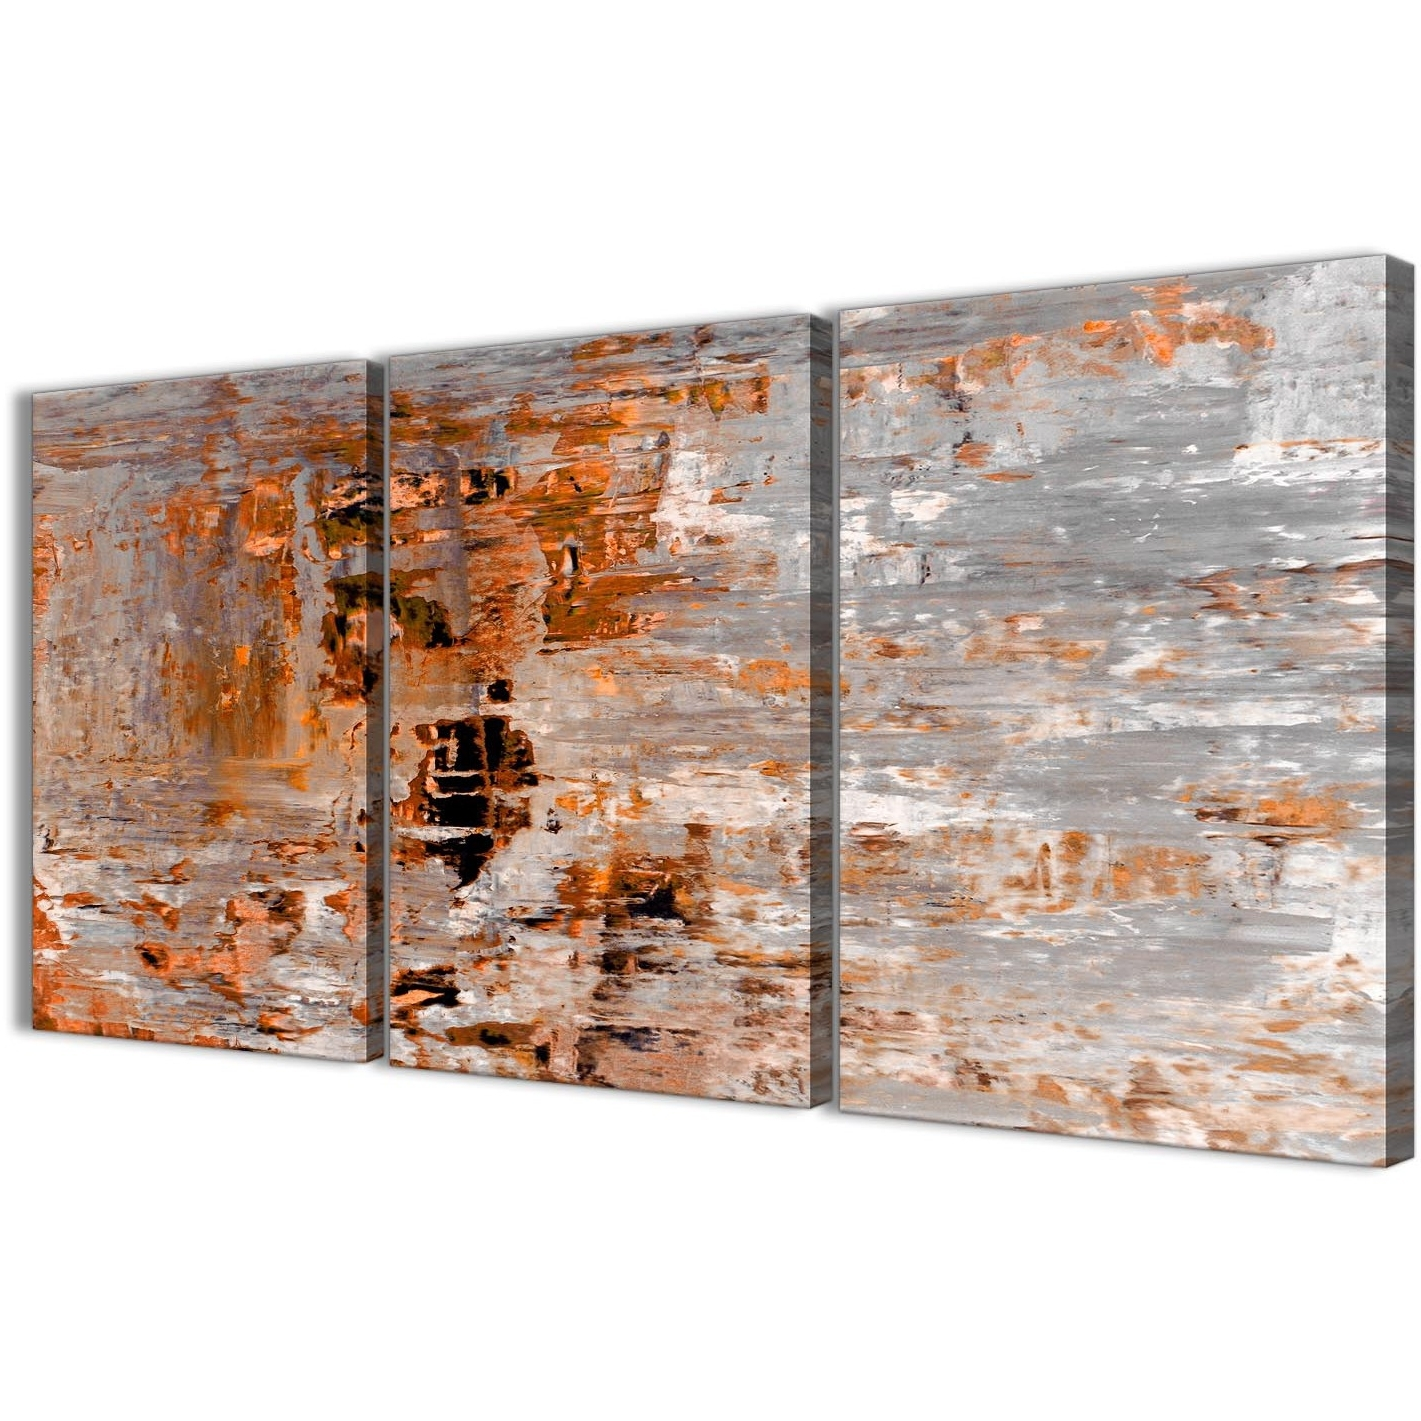 Orange Wall Art Inside Most Recently Released 3 Panel Burnt Orange Grey Painting Dining Room Canvas Wall Art Decor (View 11 of 15)